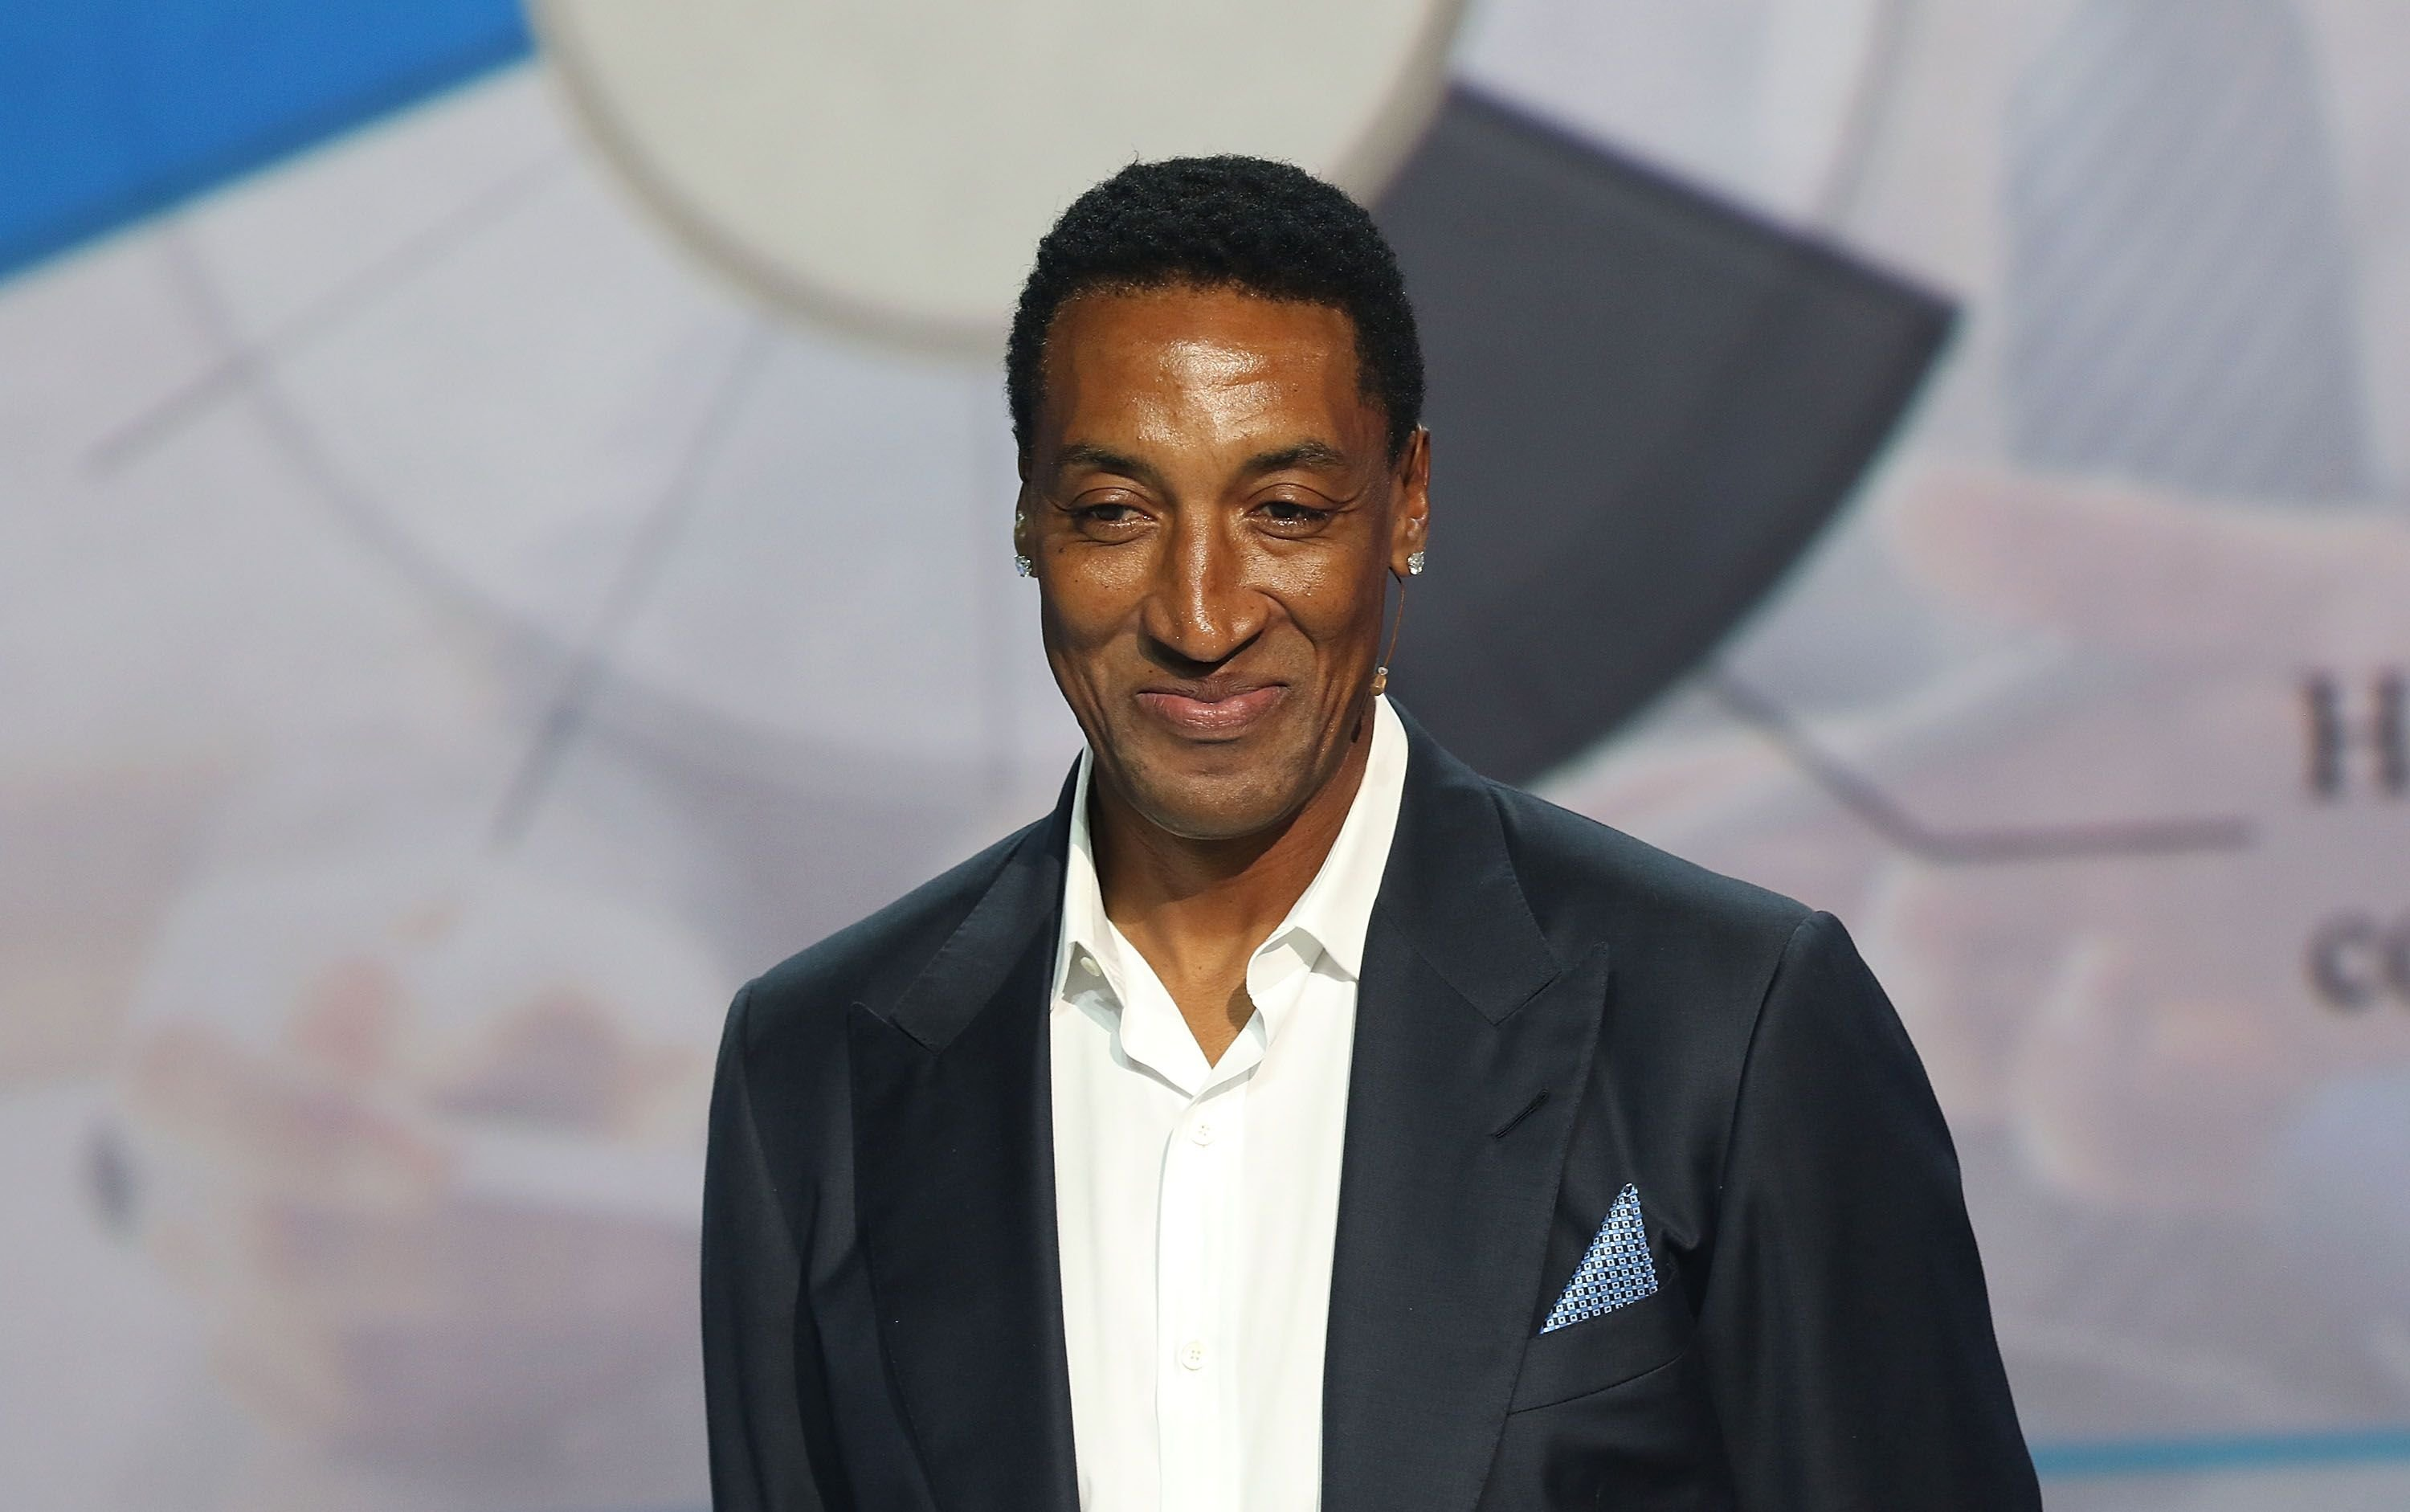 Scottie Pippen Attends Market America Conference 2016 at American Airlines Arena on February 4, 2016 in Miami, Florida. | Source: Getty Images